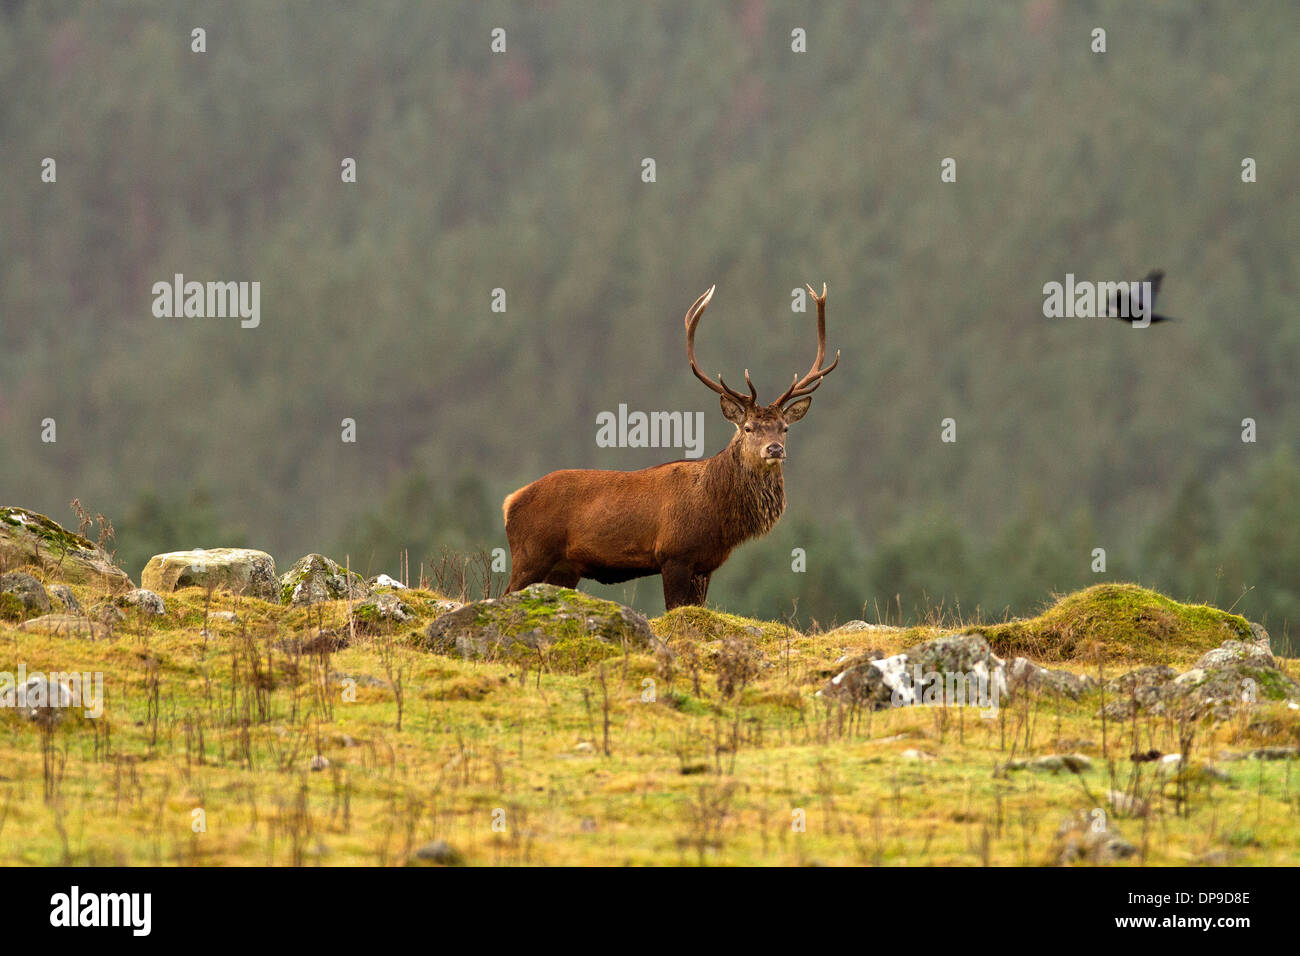 Red Deer Stag in Scotland's highlands Stock Photo